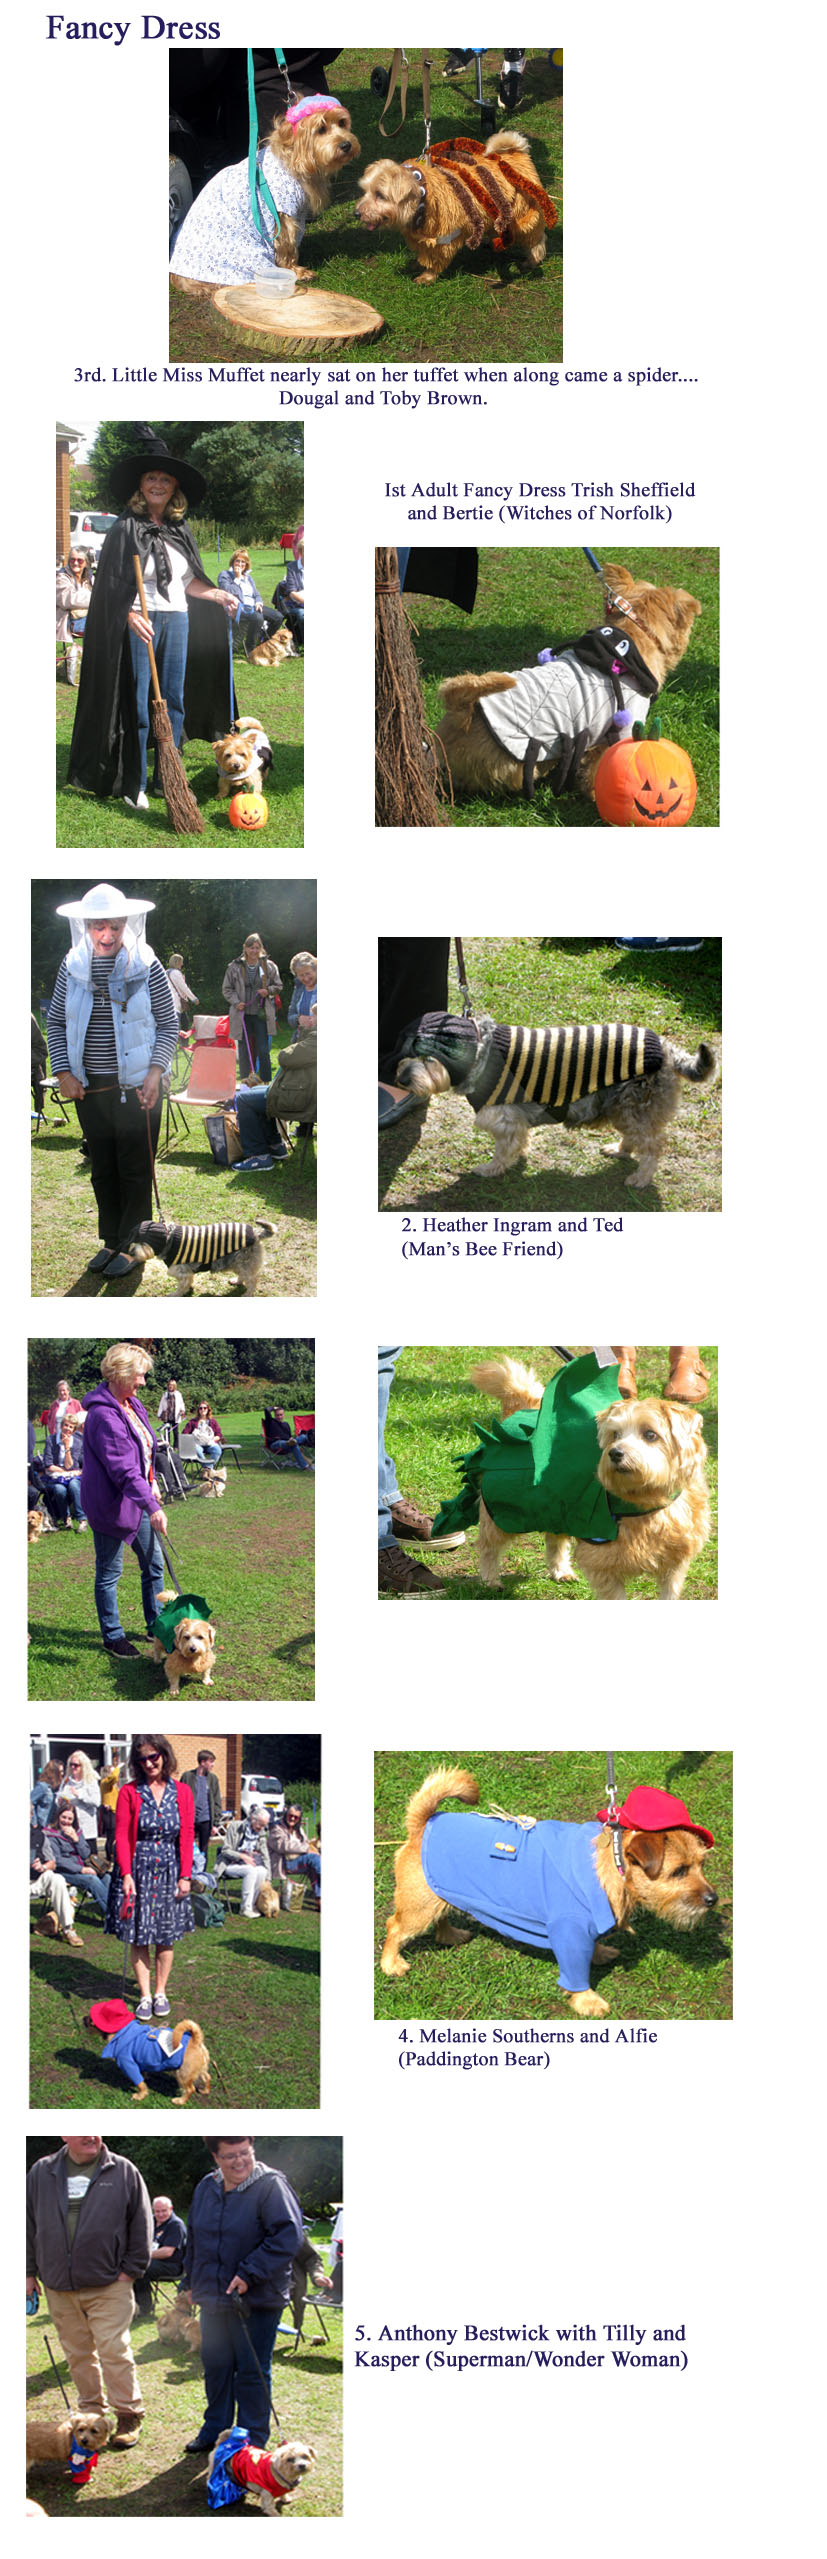 Fancy dress, fun day 2018